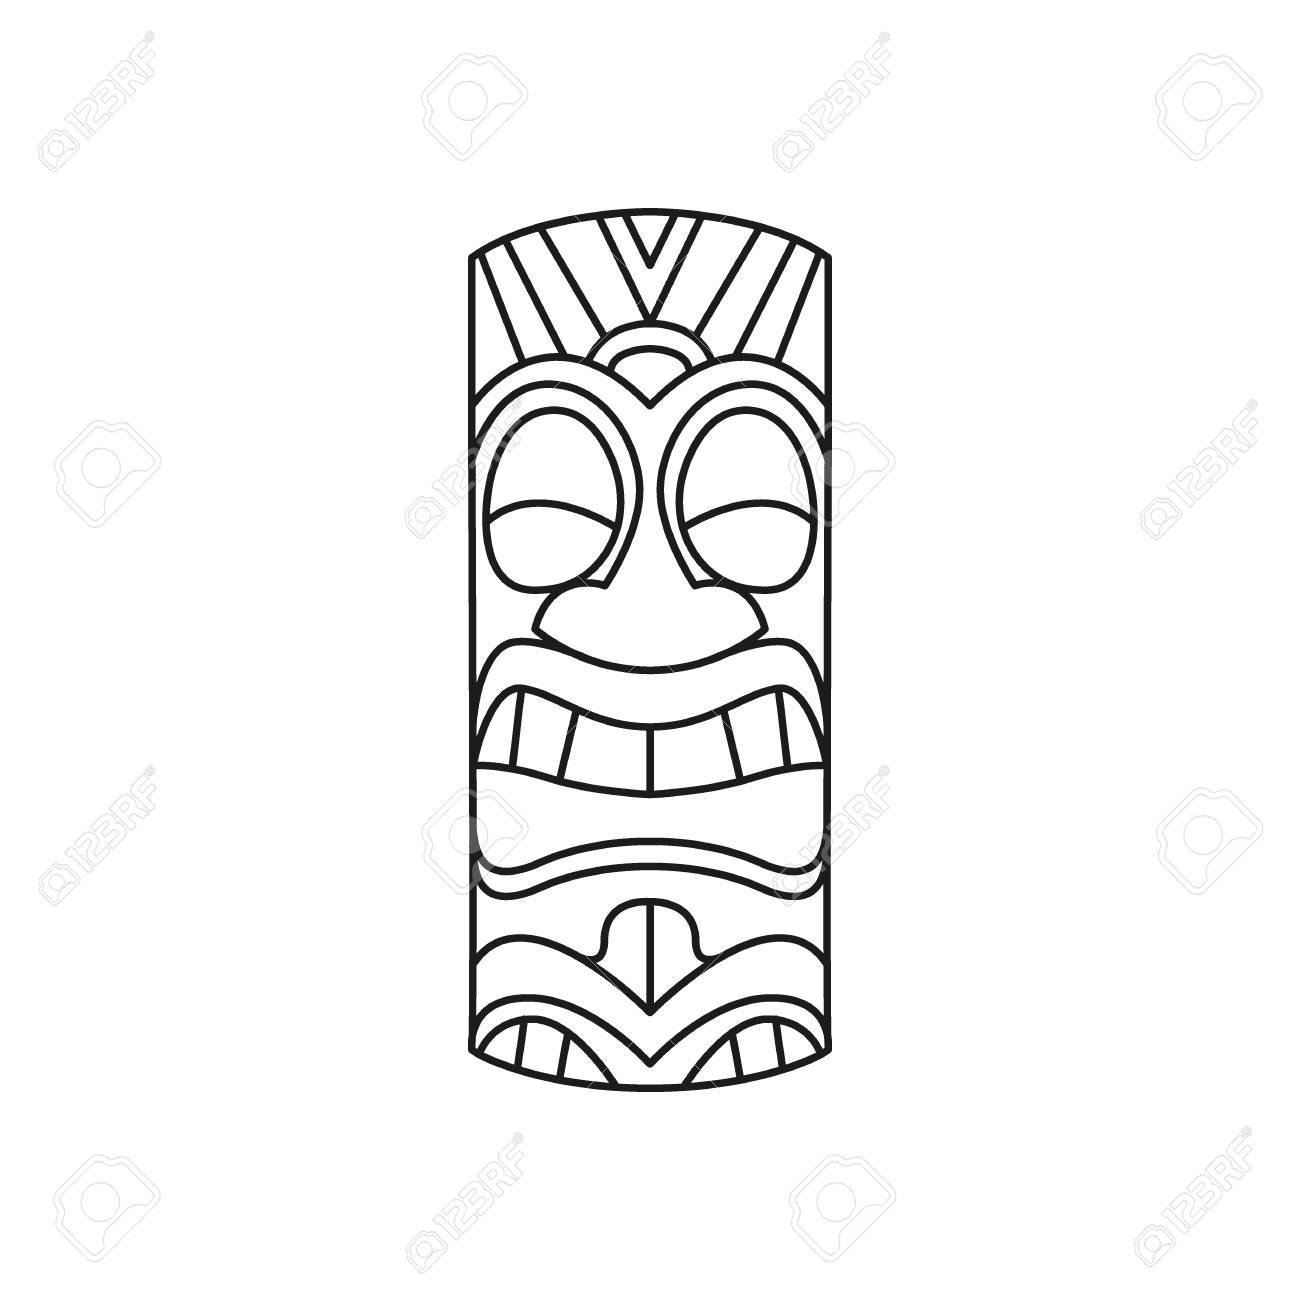 Eagle Totem Pole Drawing